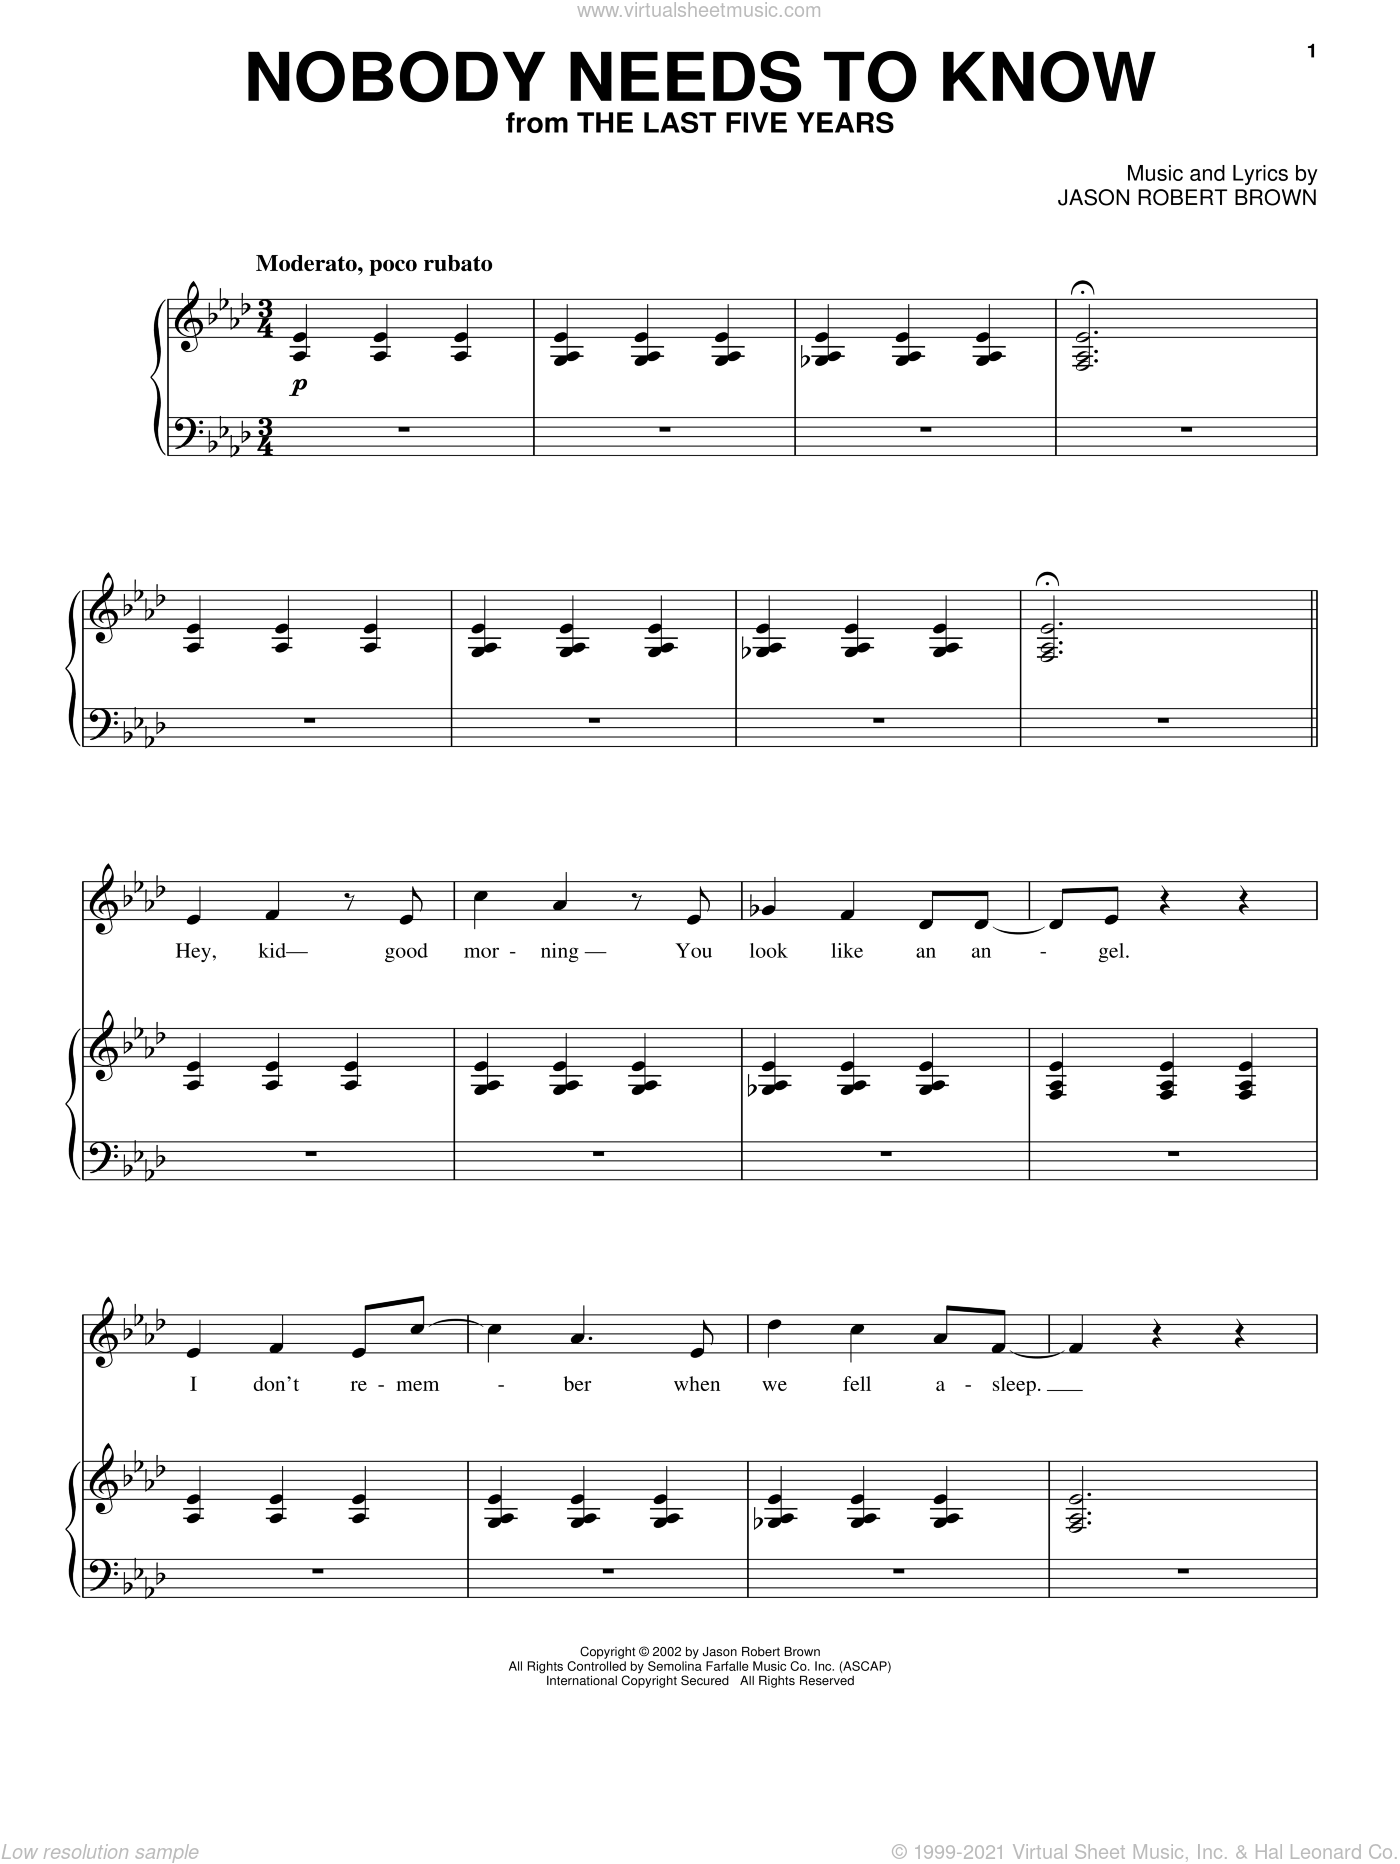 Nobody Needs To Know sheet music for voice, piano or guitar by Jason Robert Brown